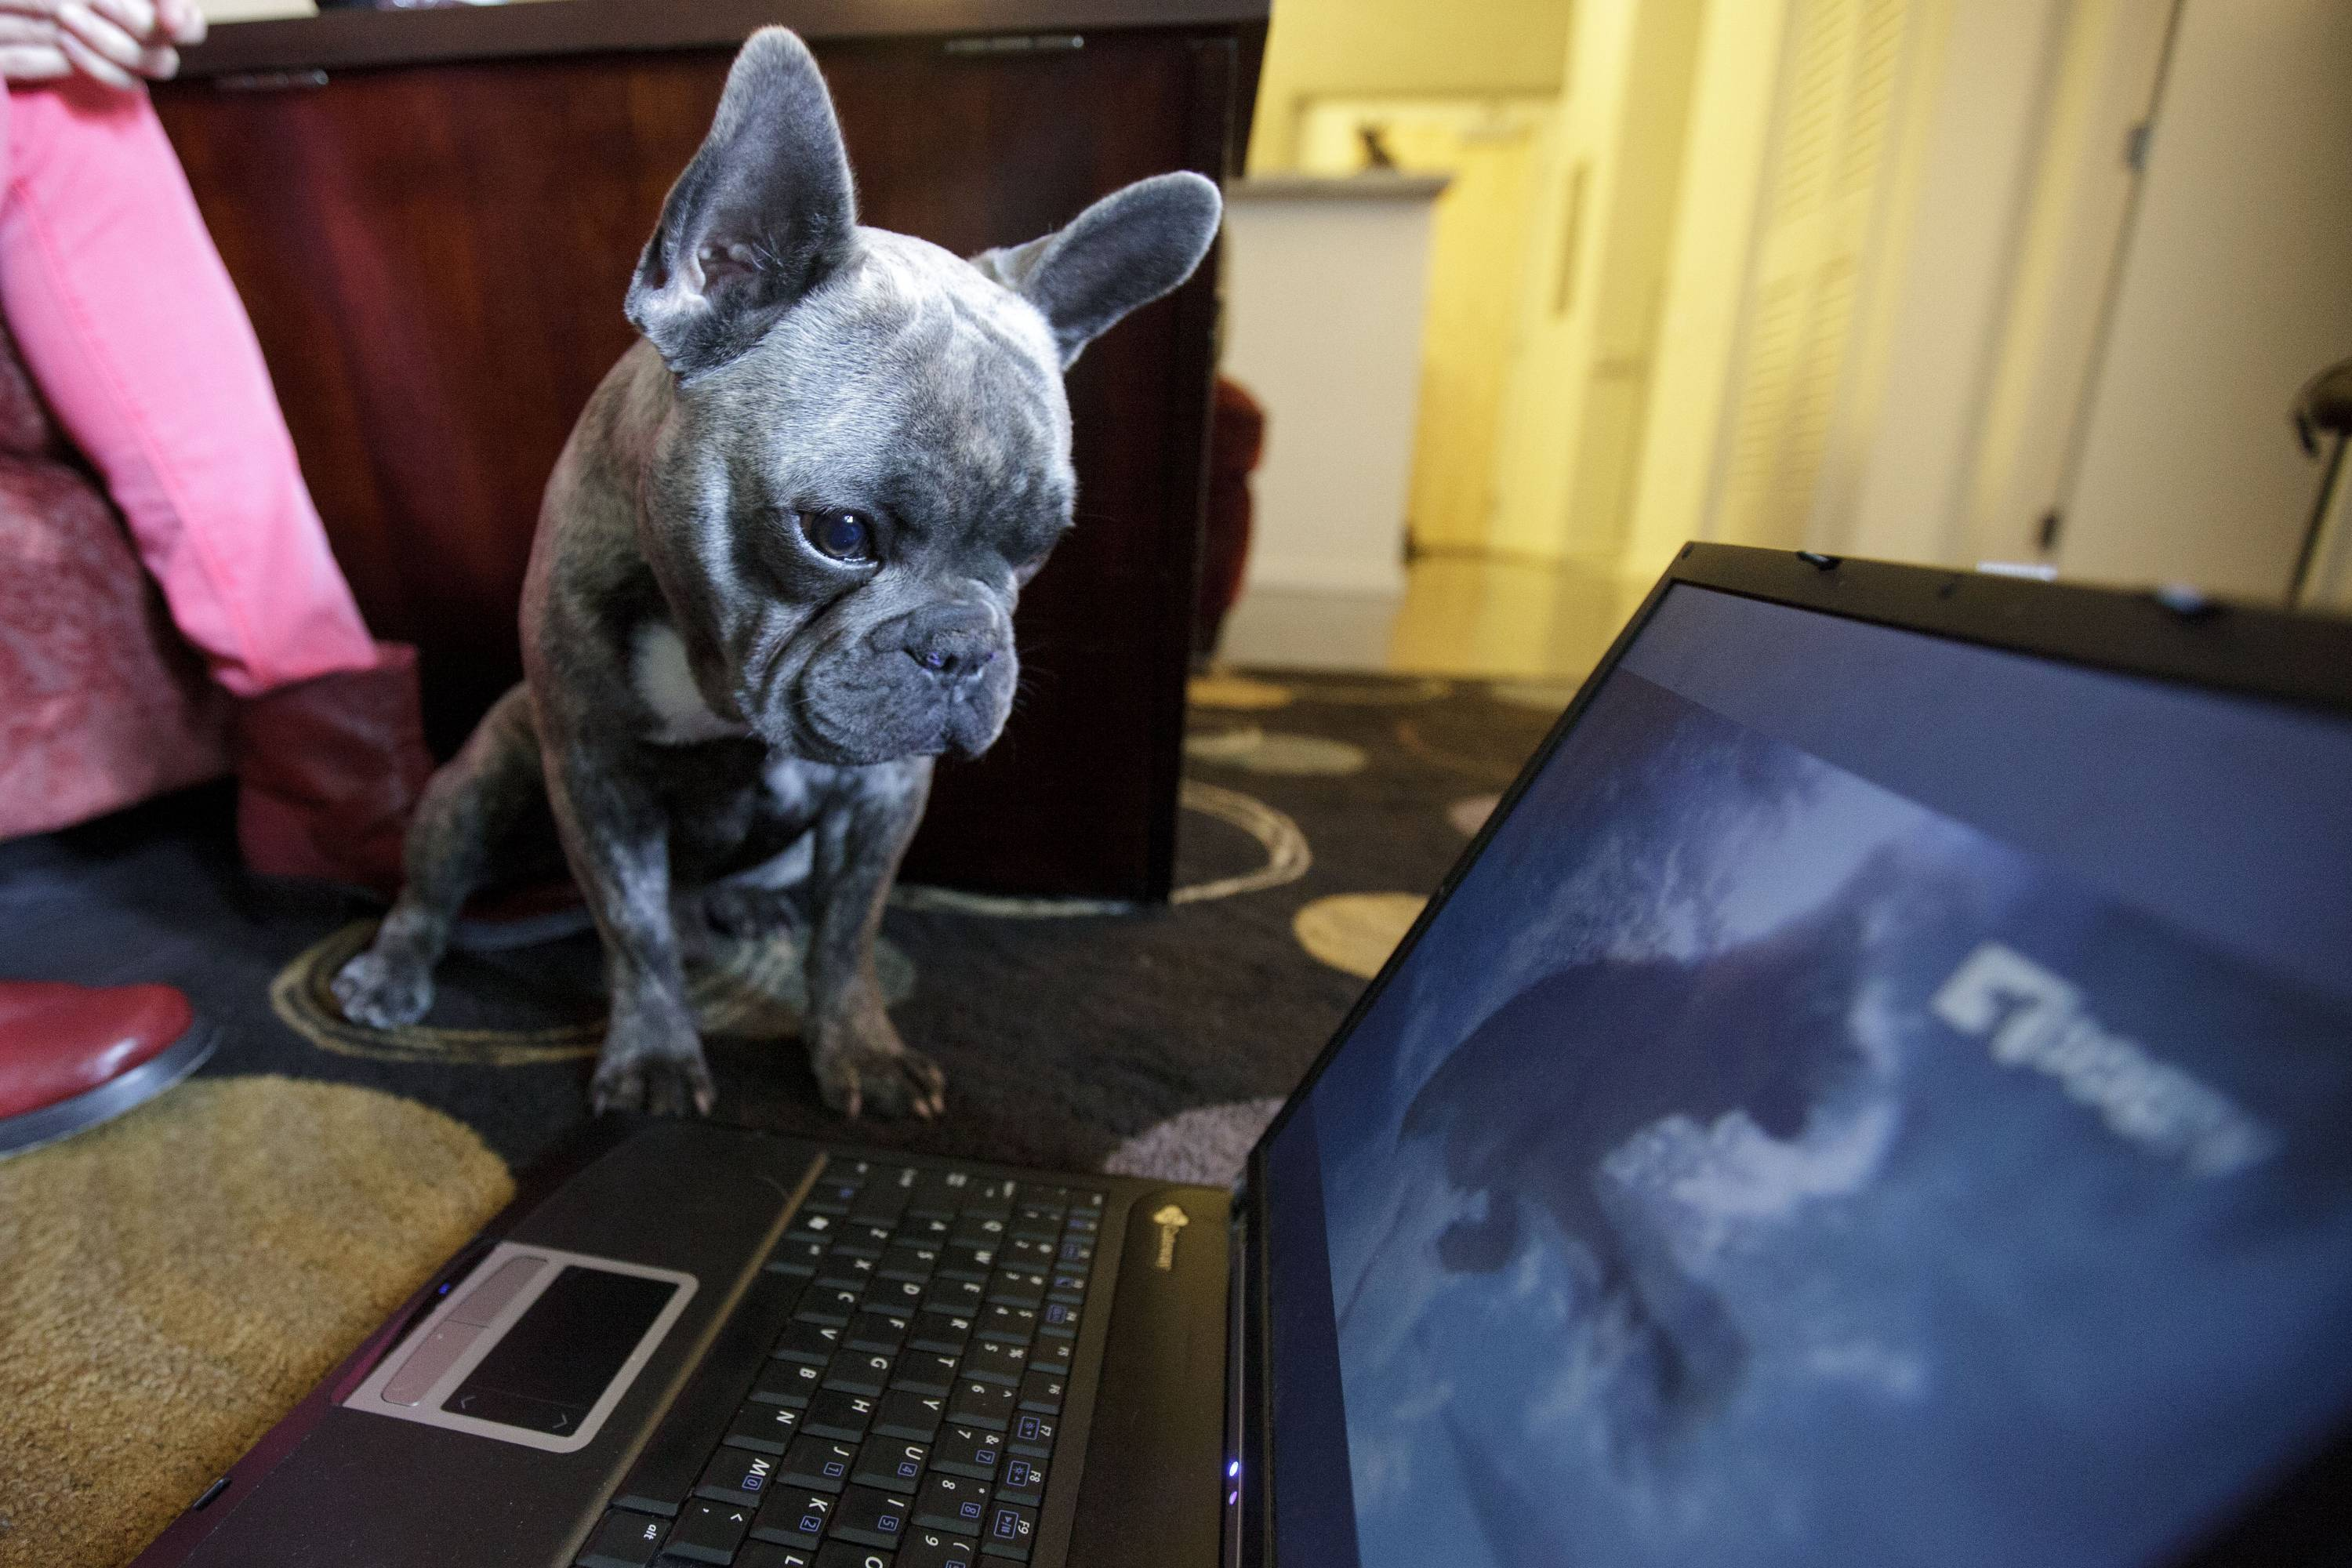 Bleu, a French bulldog owned by Maria Catania, watches DogTV in her apartment in San Diego, Calif. DogTV asked Grammy-winning musician Andrew Dost of indie rock band fun. to write some psychoacoustic music for the network.